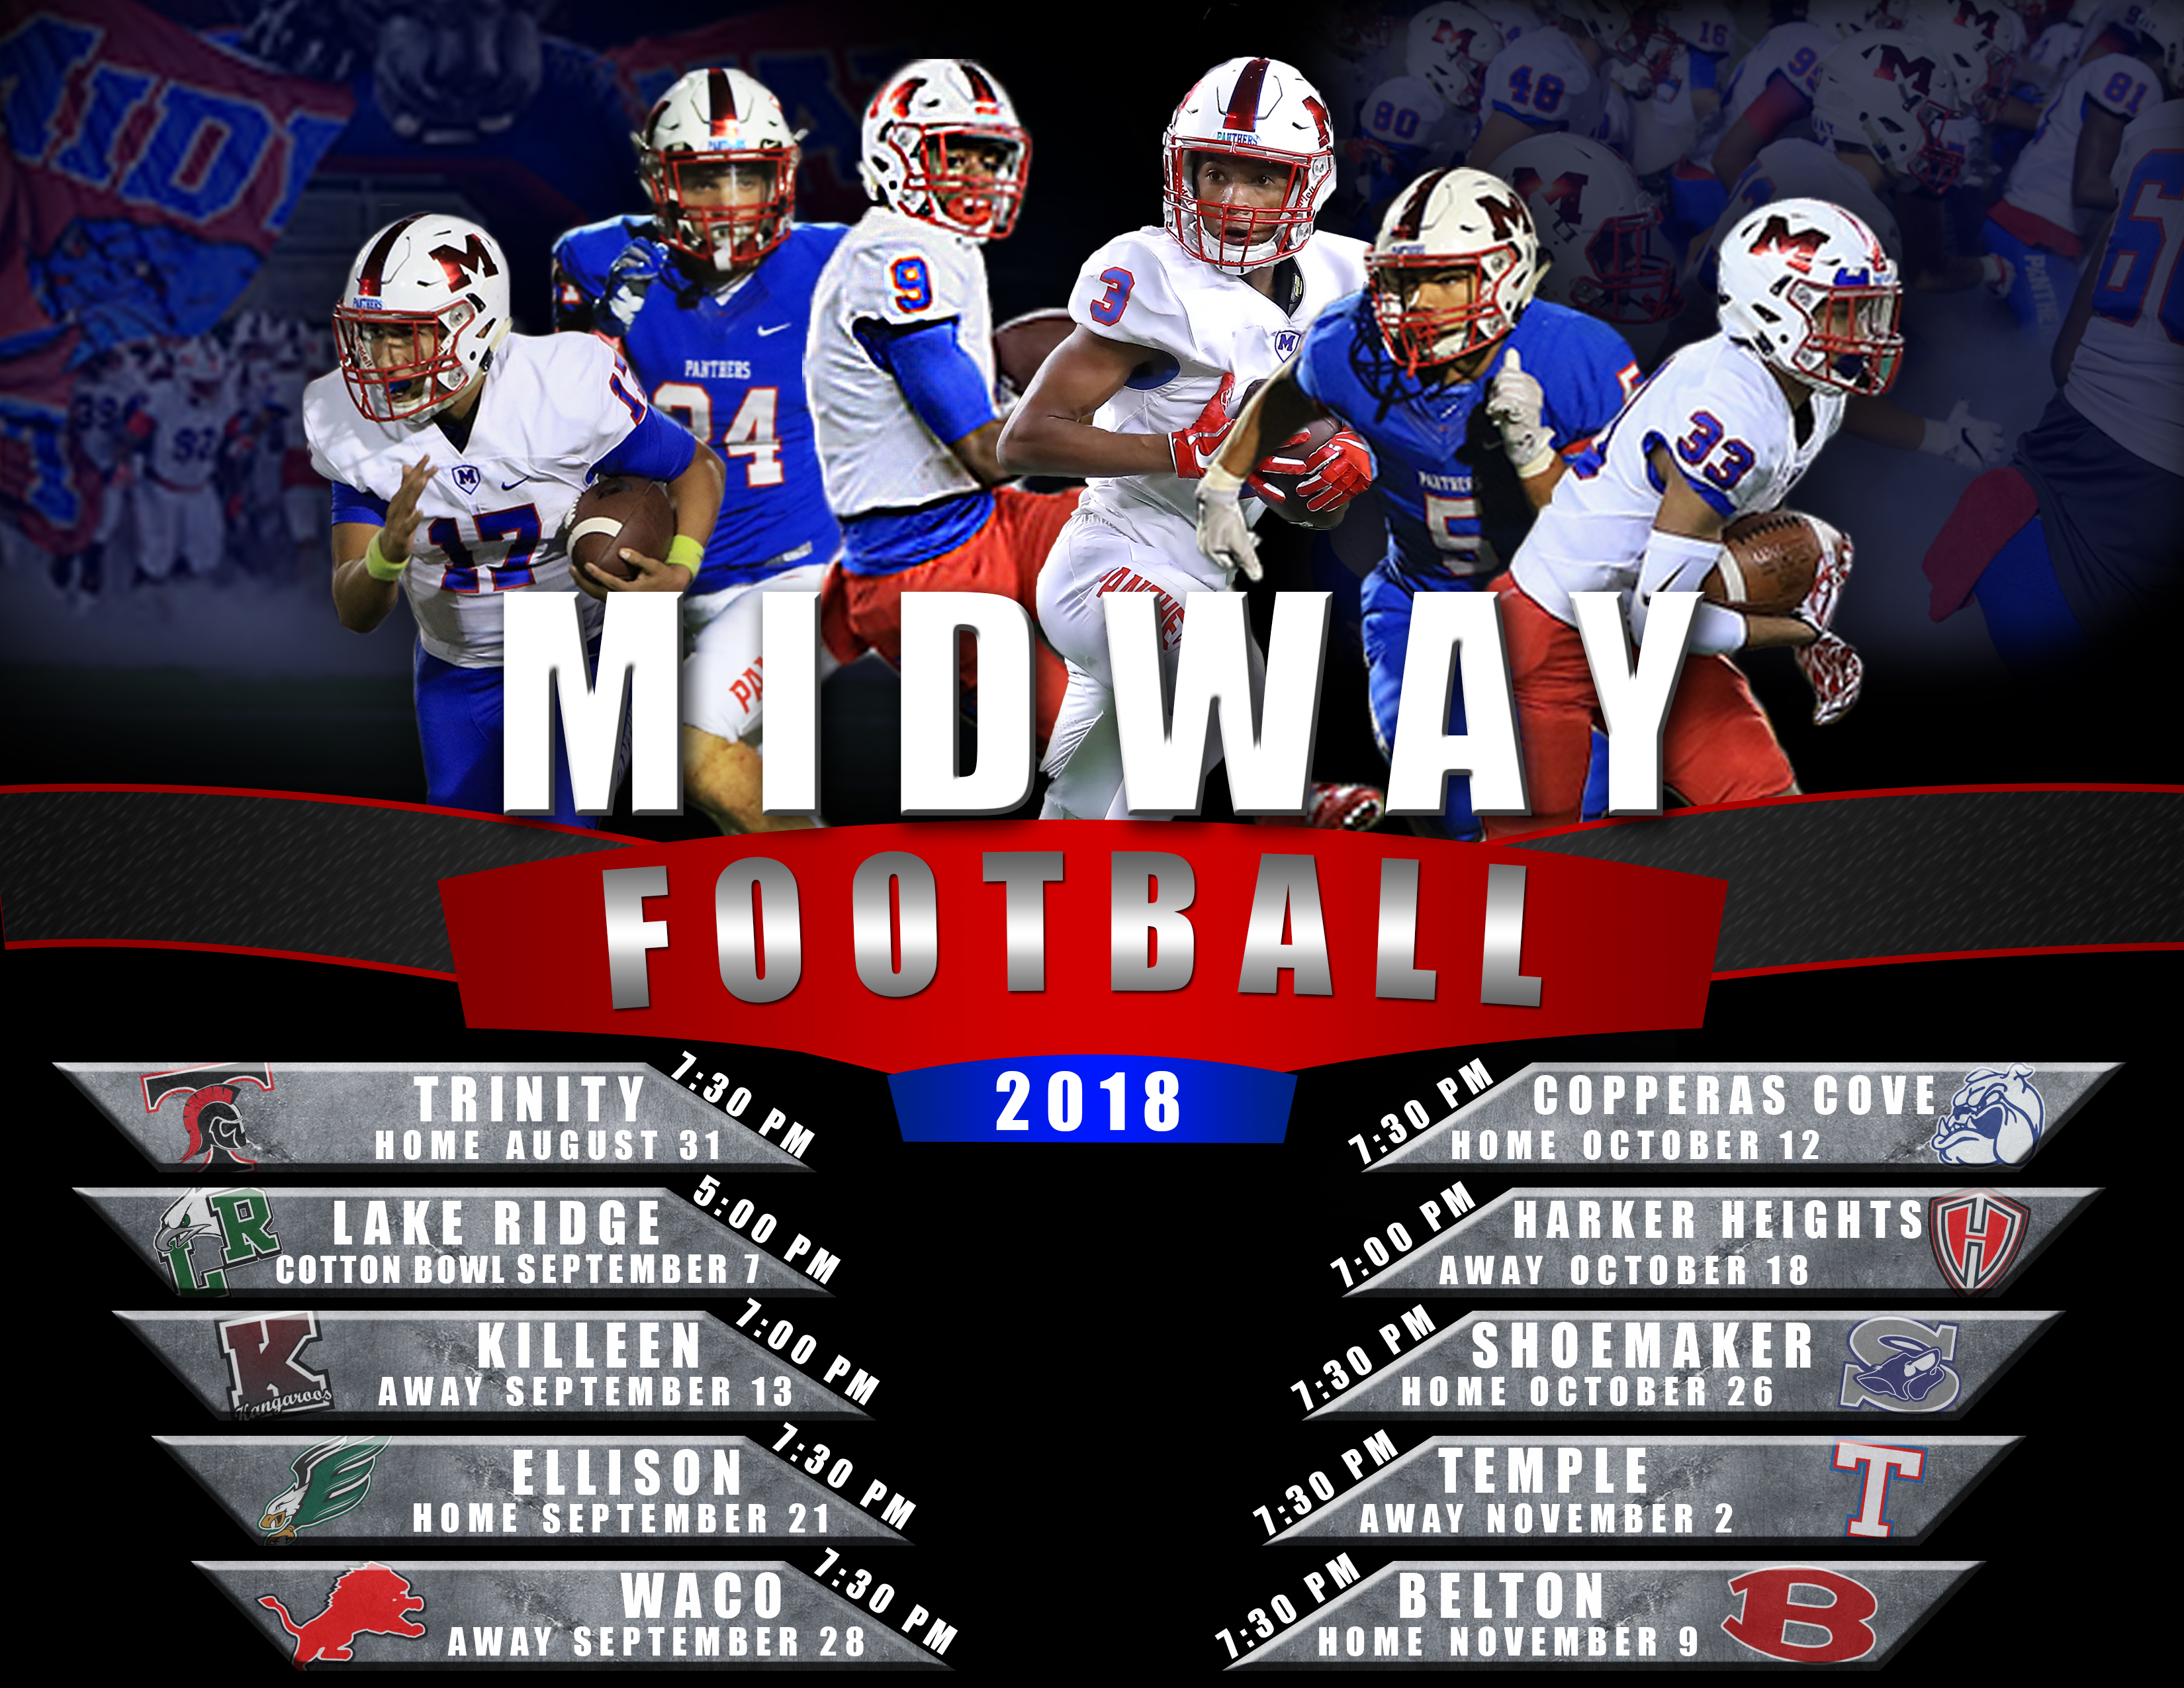 2018 Midway Panther Football Schedule